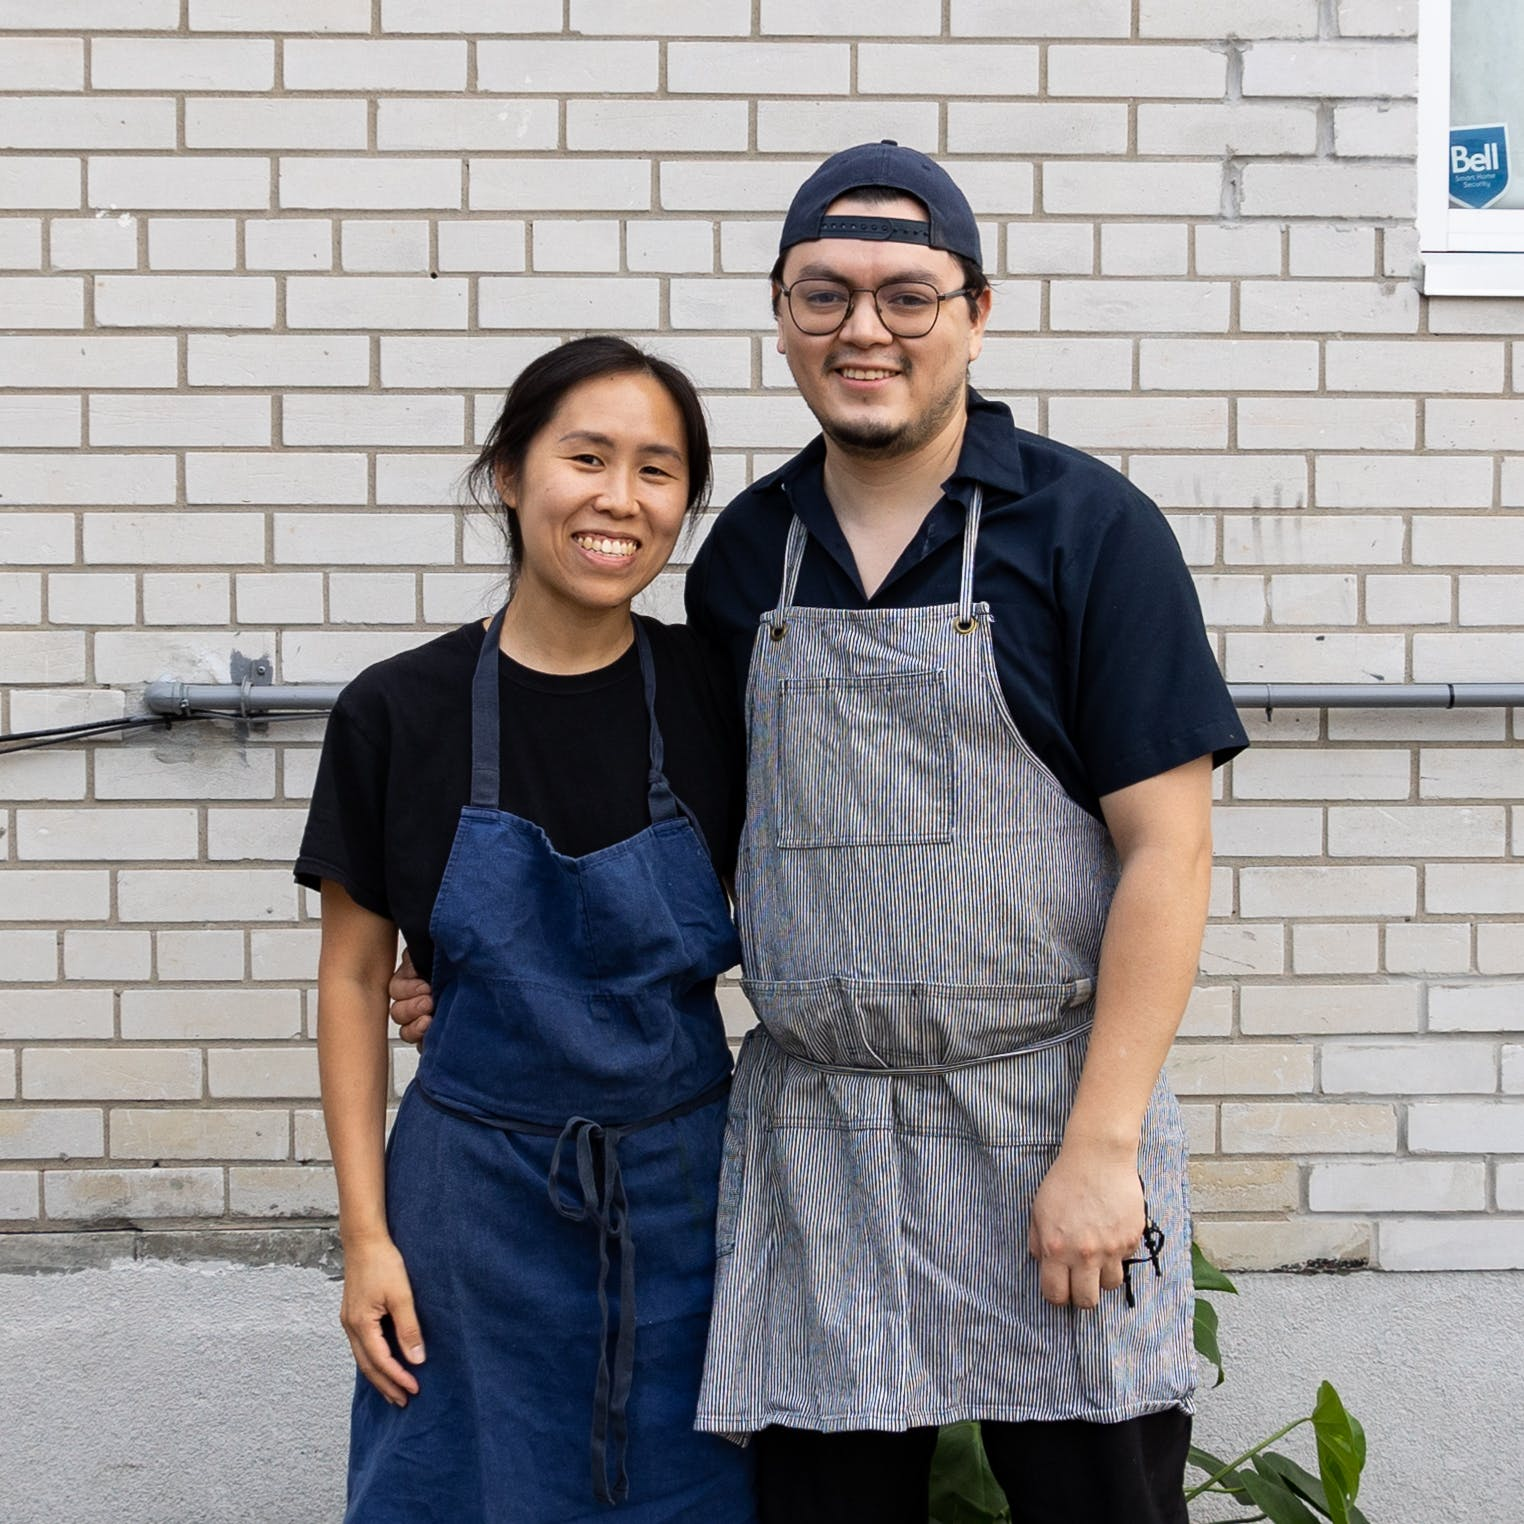 Chefs and Owners of ALMA+GIL Mandy Sou and Gerry Quintero